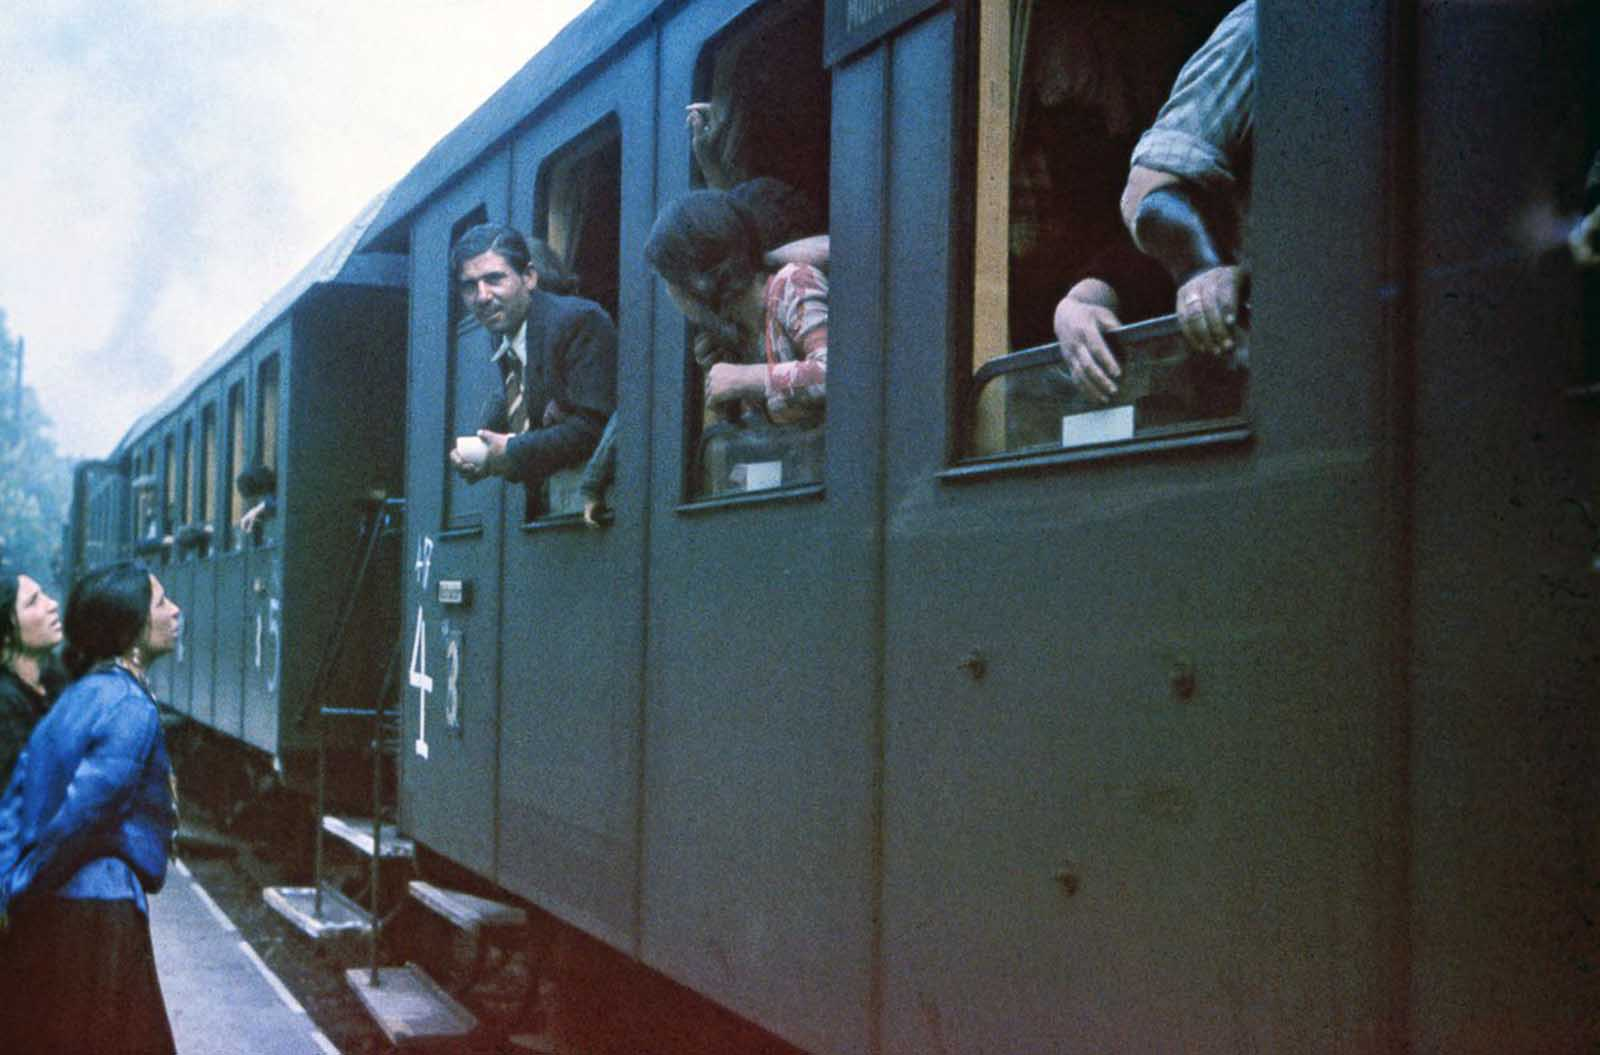 Sinti board the train that will take them to a concentration camp in Poland. May 22, 1940.